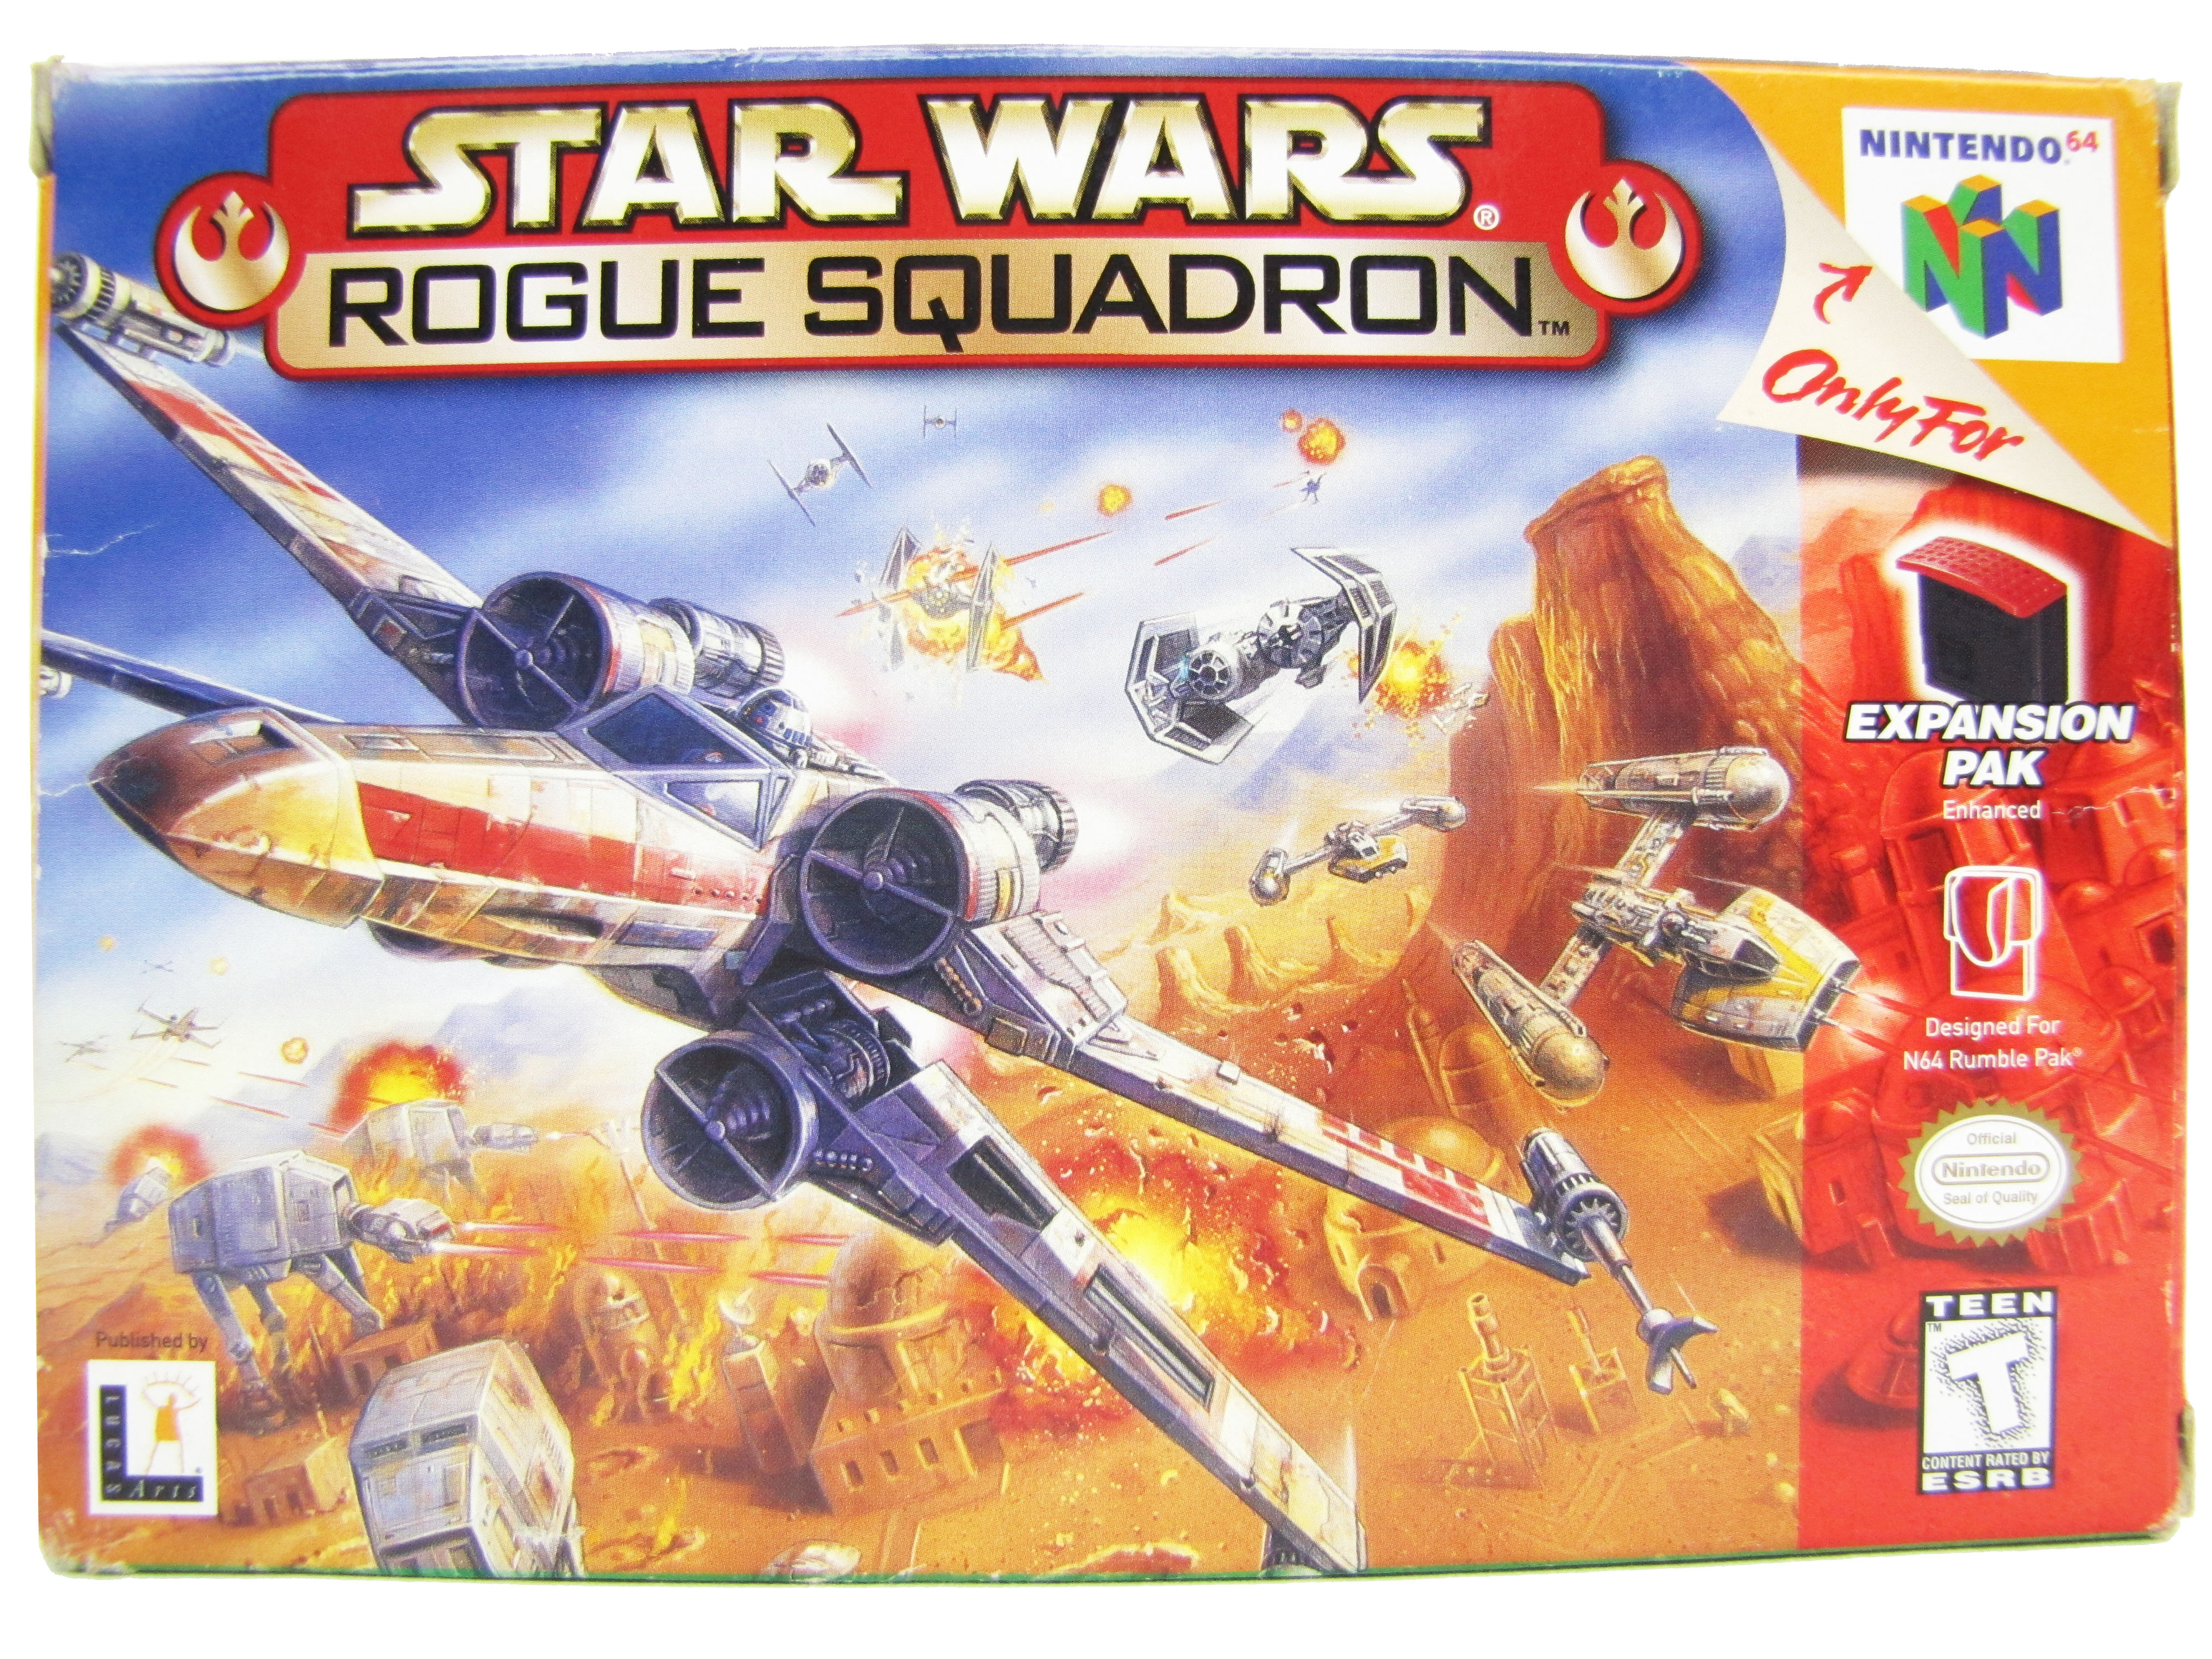 N64 Star Wars: Rogue Squadron Complete in Box - 1998